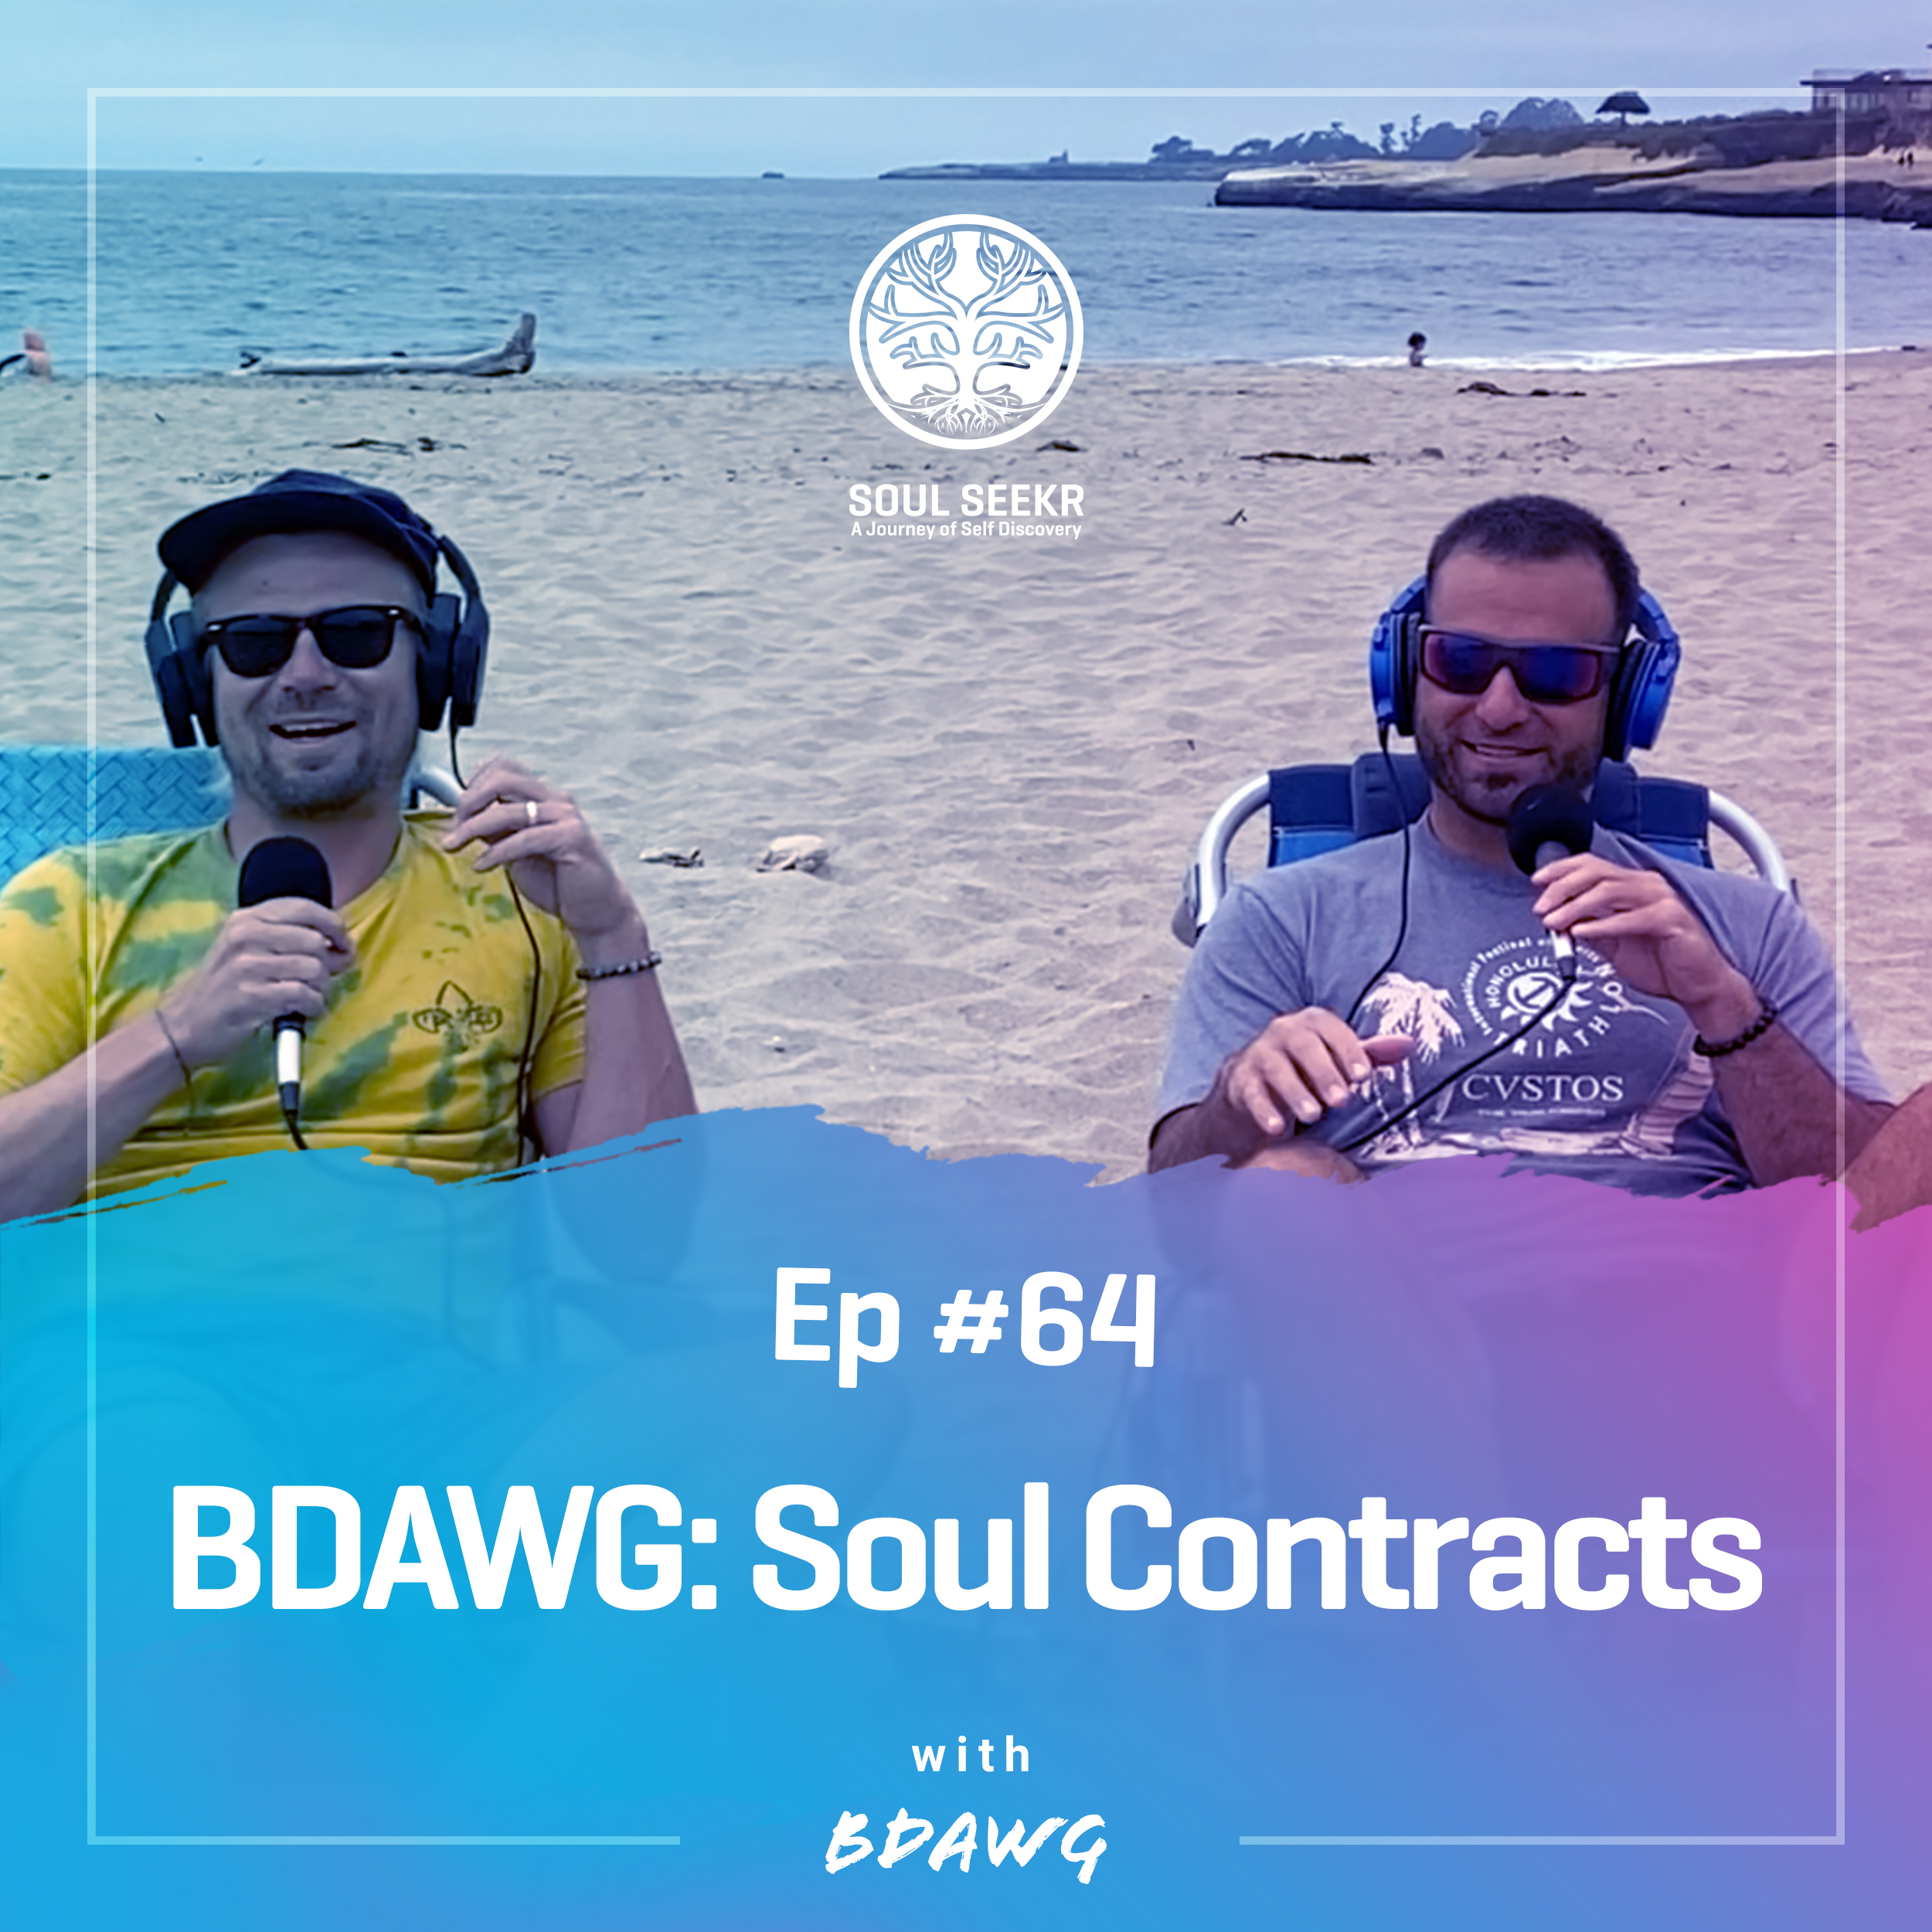 #64: Soul Contracts with BDAWG